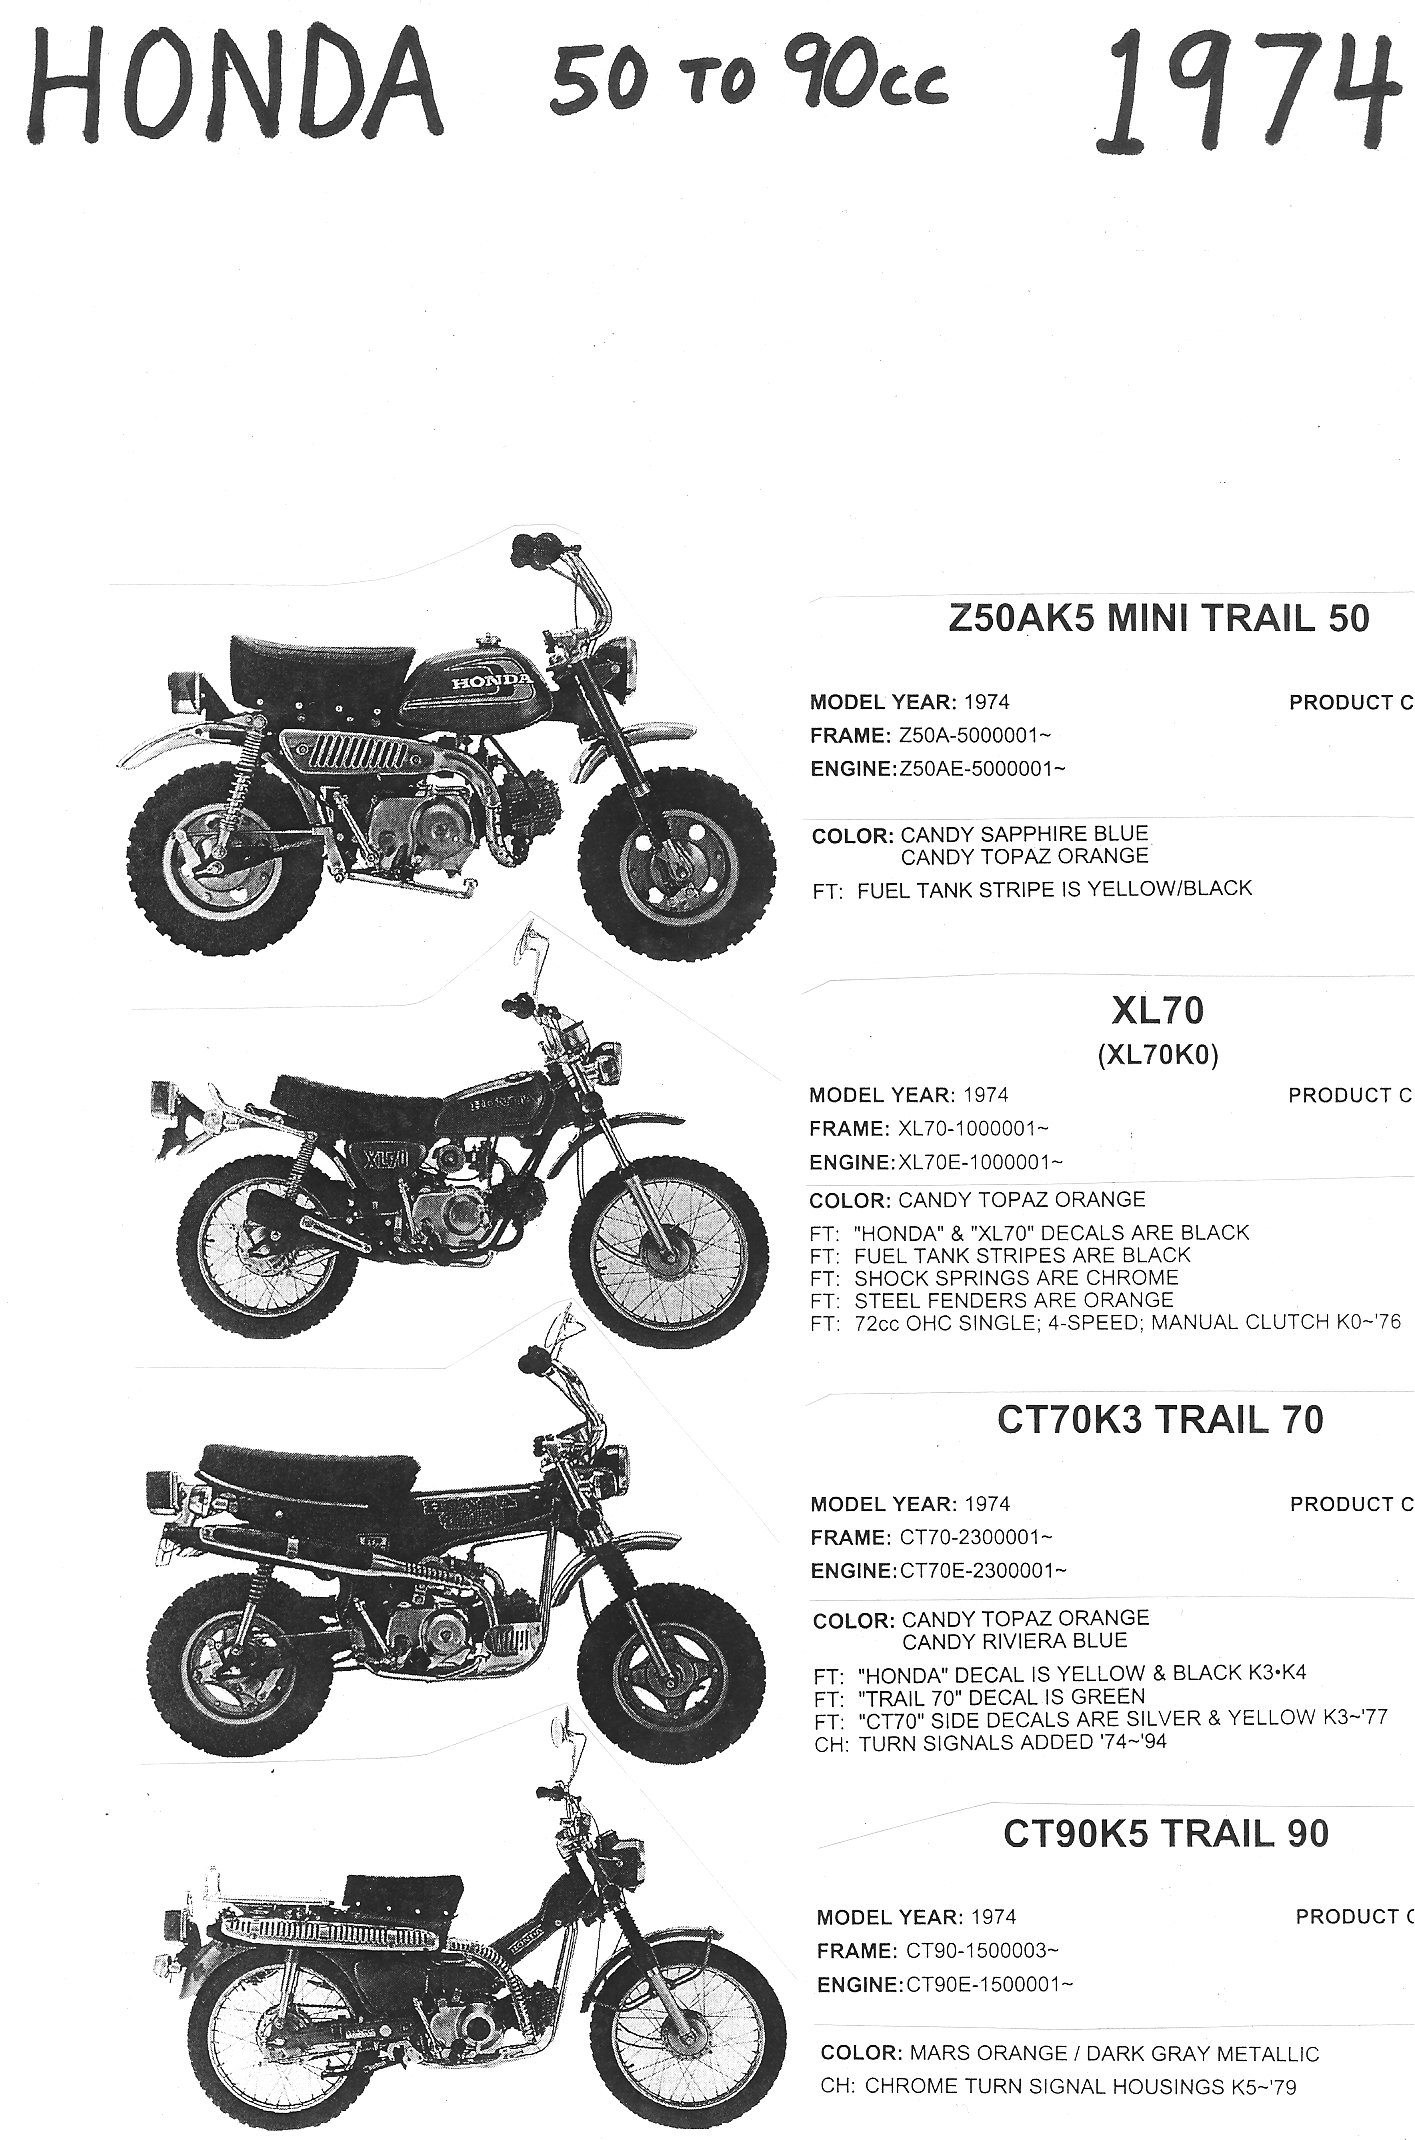 Bmw E34 Parts Diagram Online additionally Cars together with Ow as well Free Printable Motorcycle Coloring Pages For Kids heavy Race Car Coloring Pages Heavy Race Car Coloring Pages together with 2010 09 01 archive. on best cars images on pinterest car dreams and engine